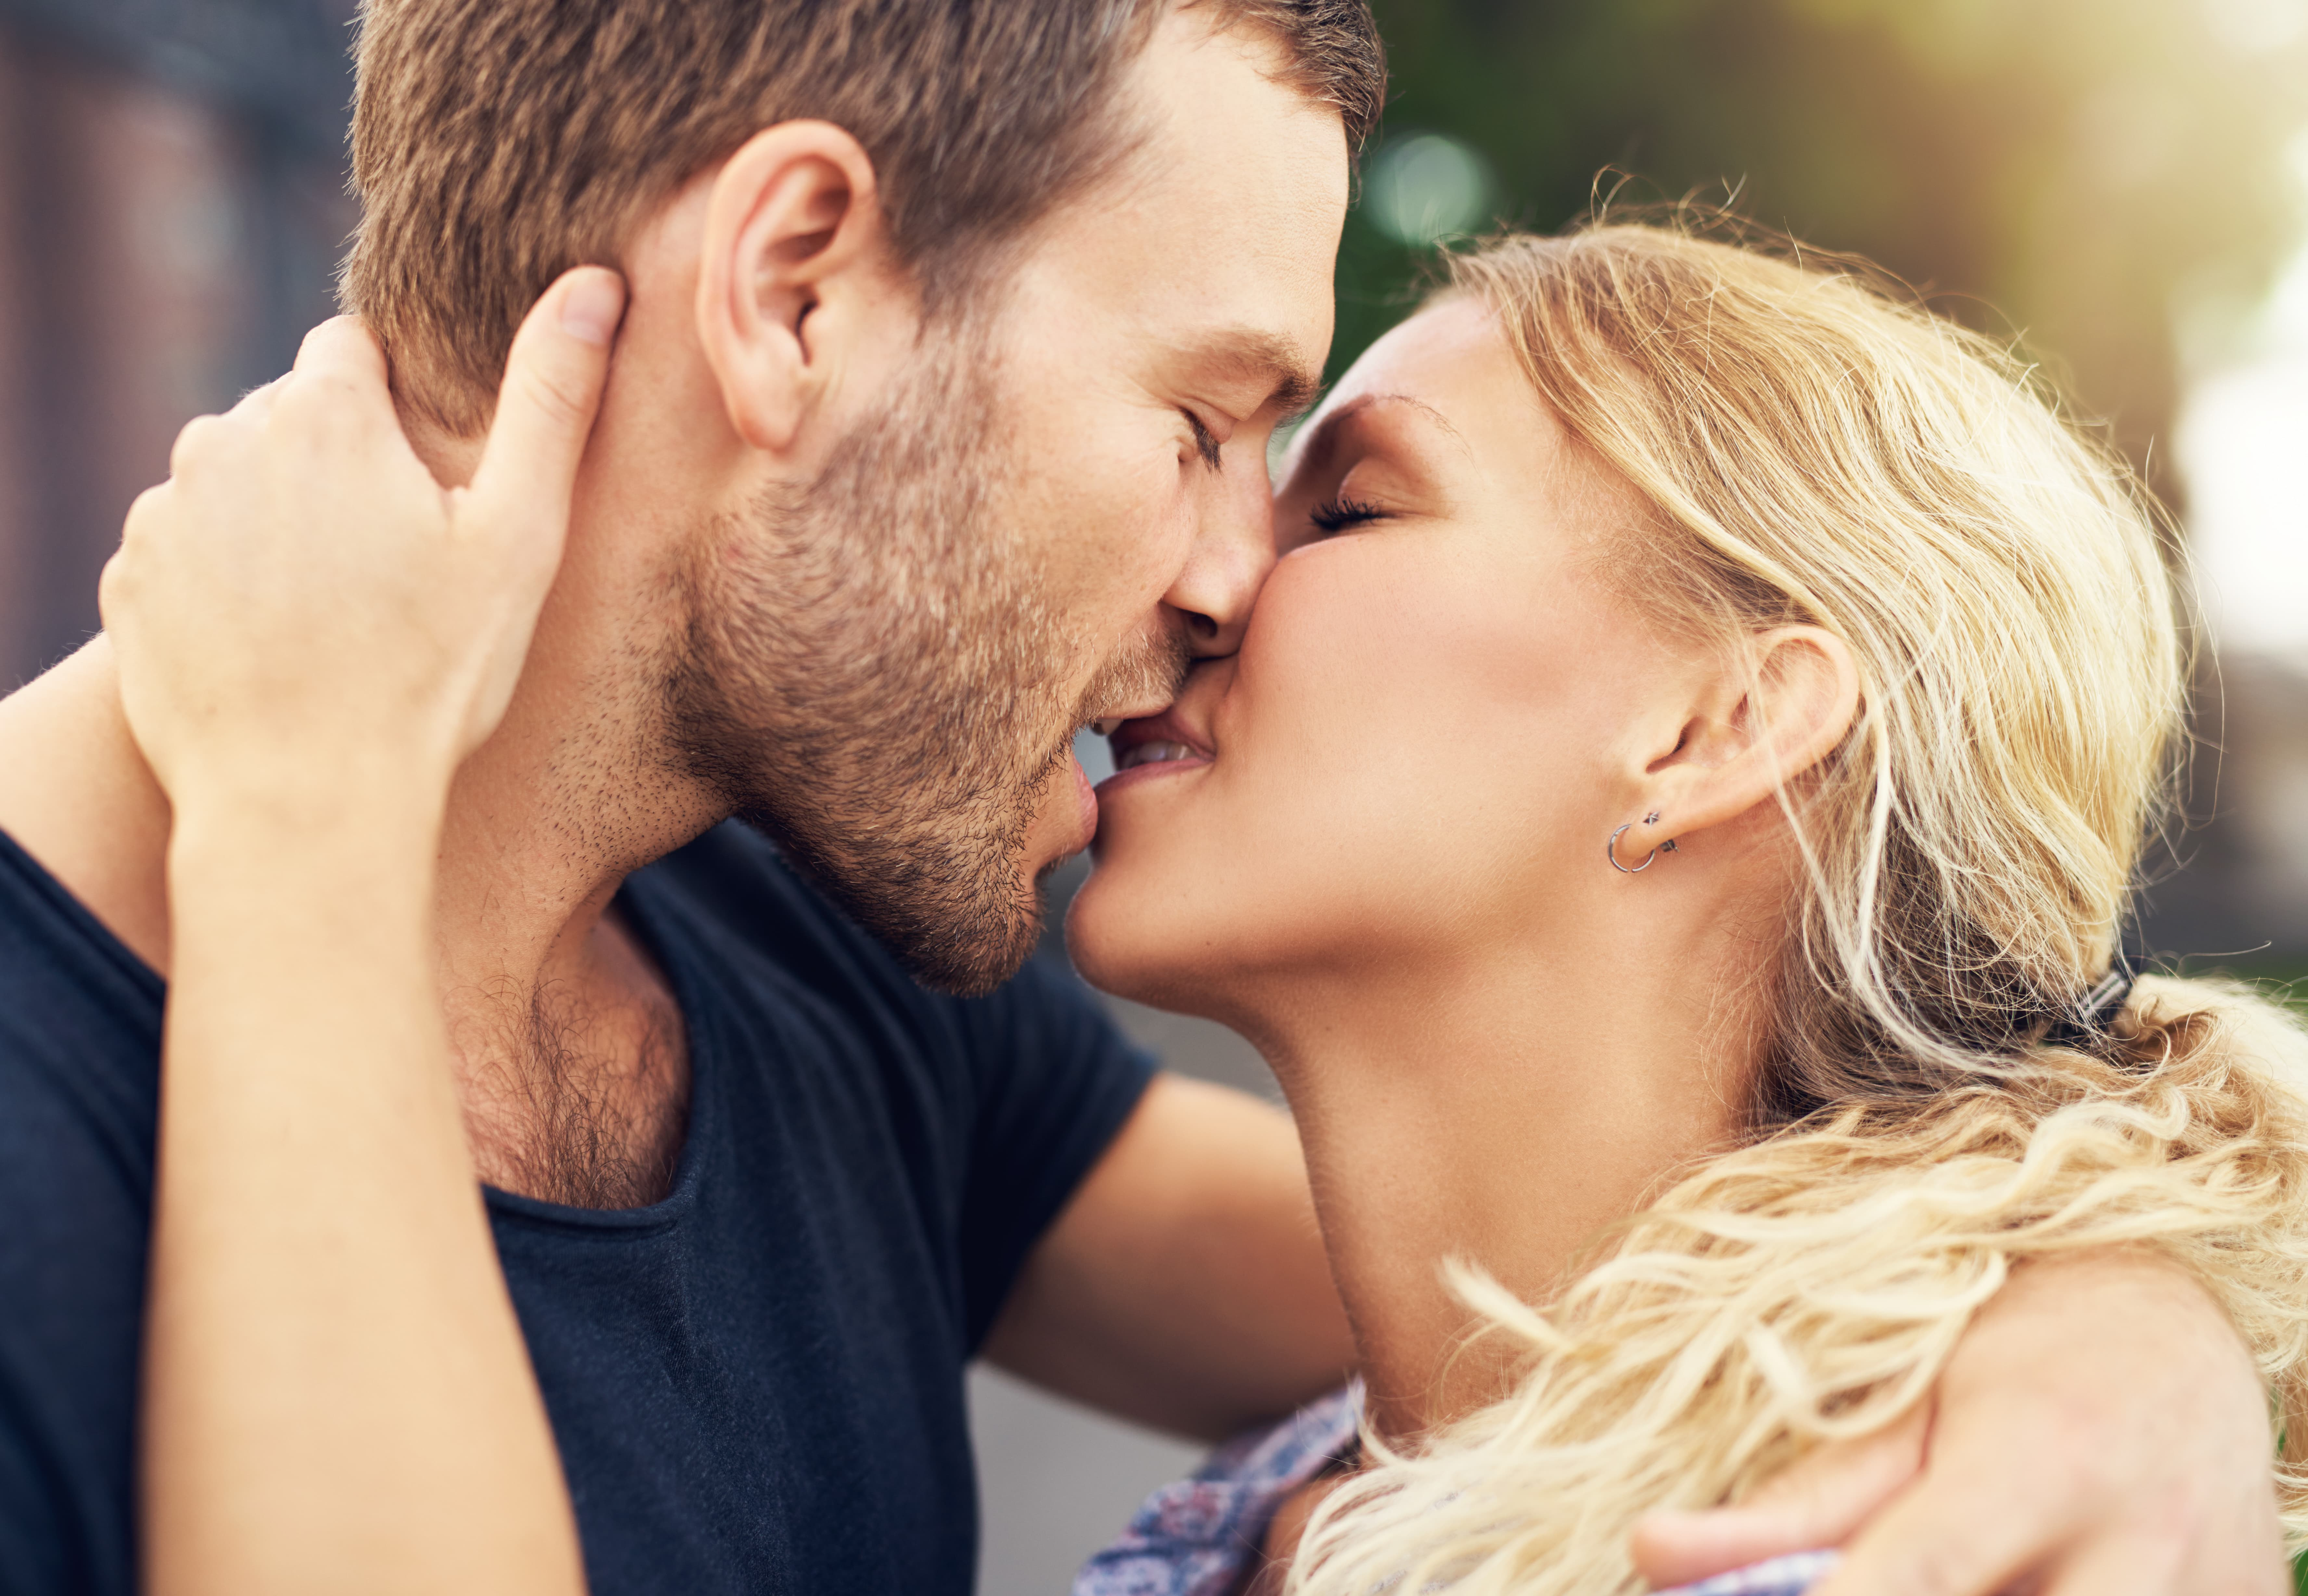 How to kiss awoman